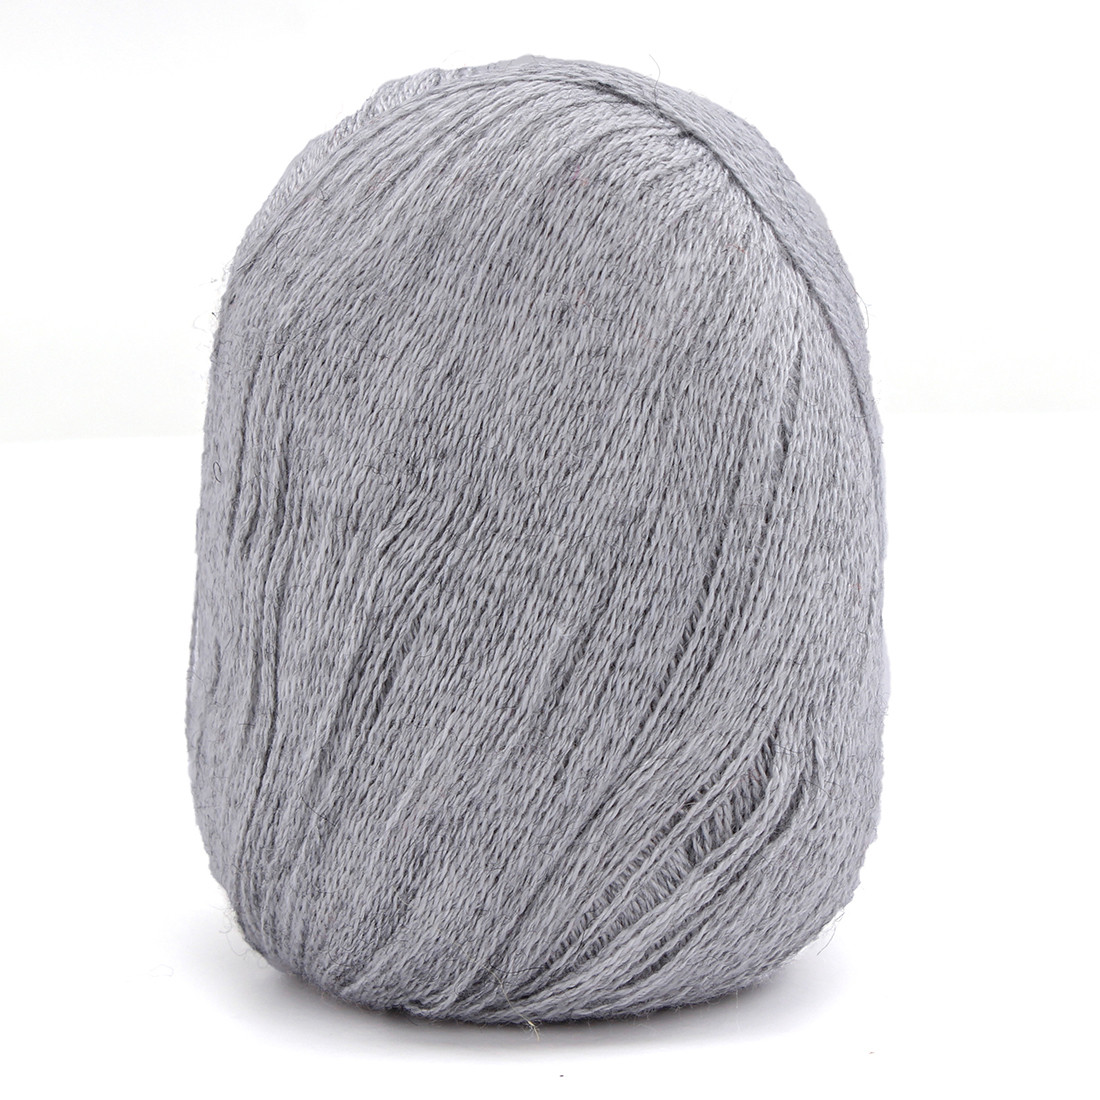 Cashmere Yarn for Sale Fresh Cashmere Skein Weaving Wool Knitting Yarn Crocheting Of Perfect 47 Models Cashmere Yarn for Sale